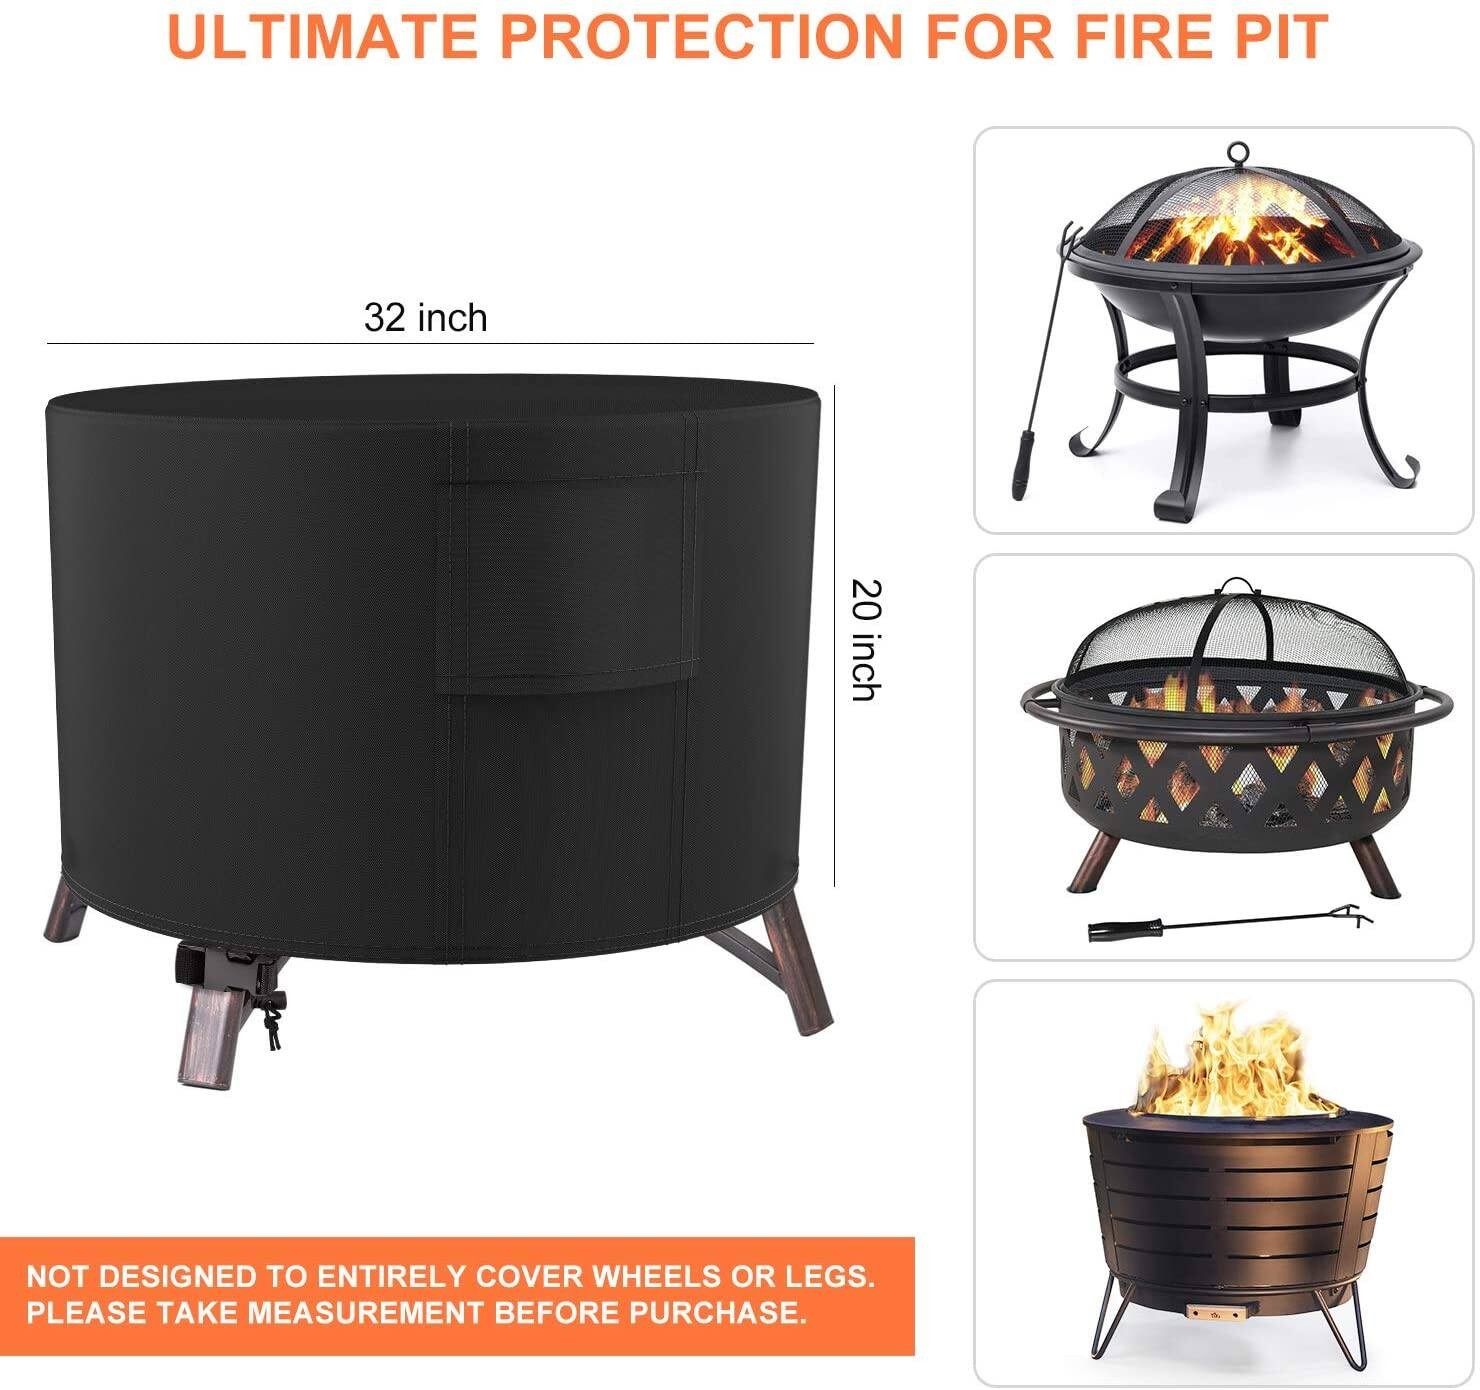 Deyard Round Fire Pit Cover 32 x 20 Inch | Square Fire Pit Cover 32 x 32 x 20 Inch for $7.02 + Free S/H for Prime